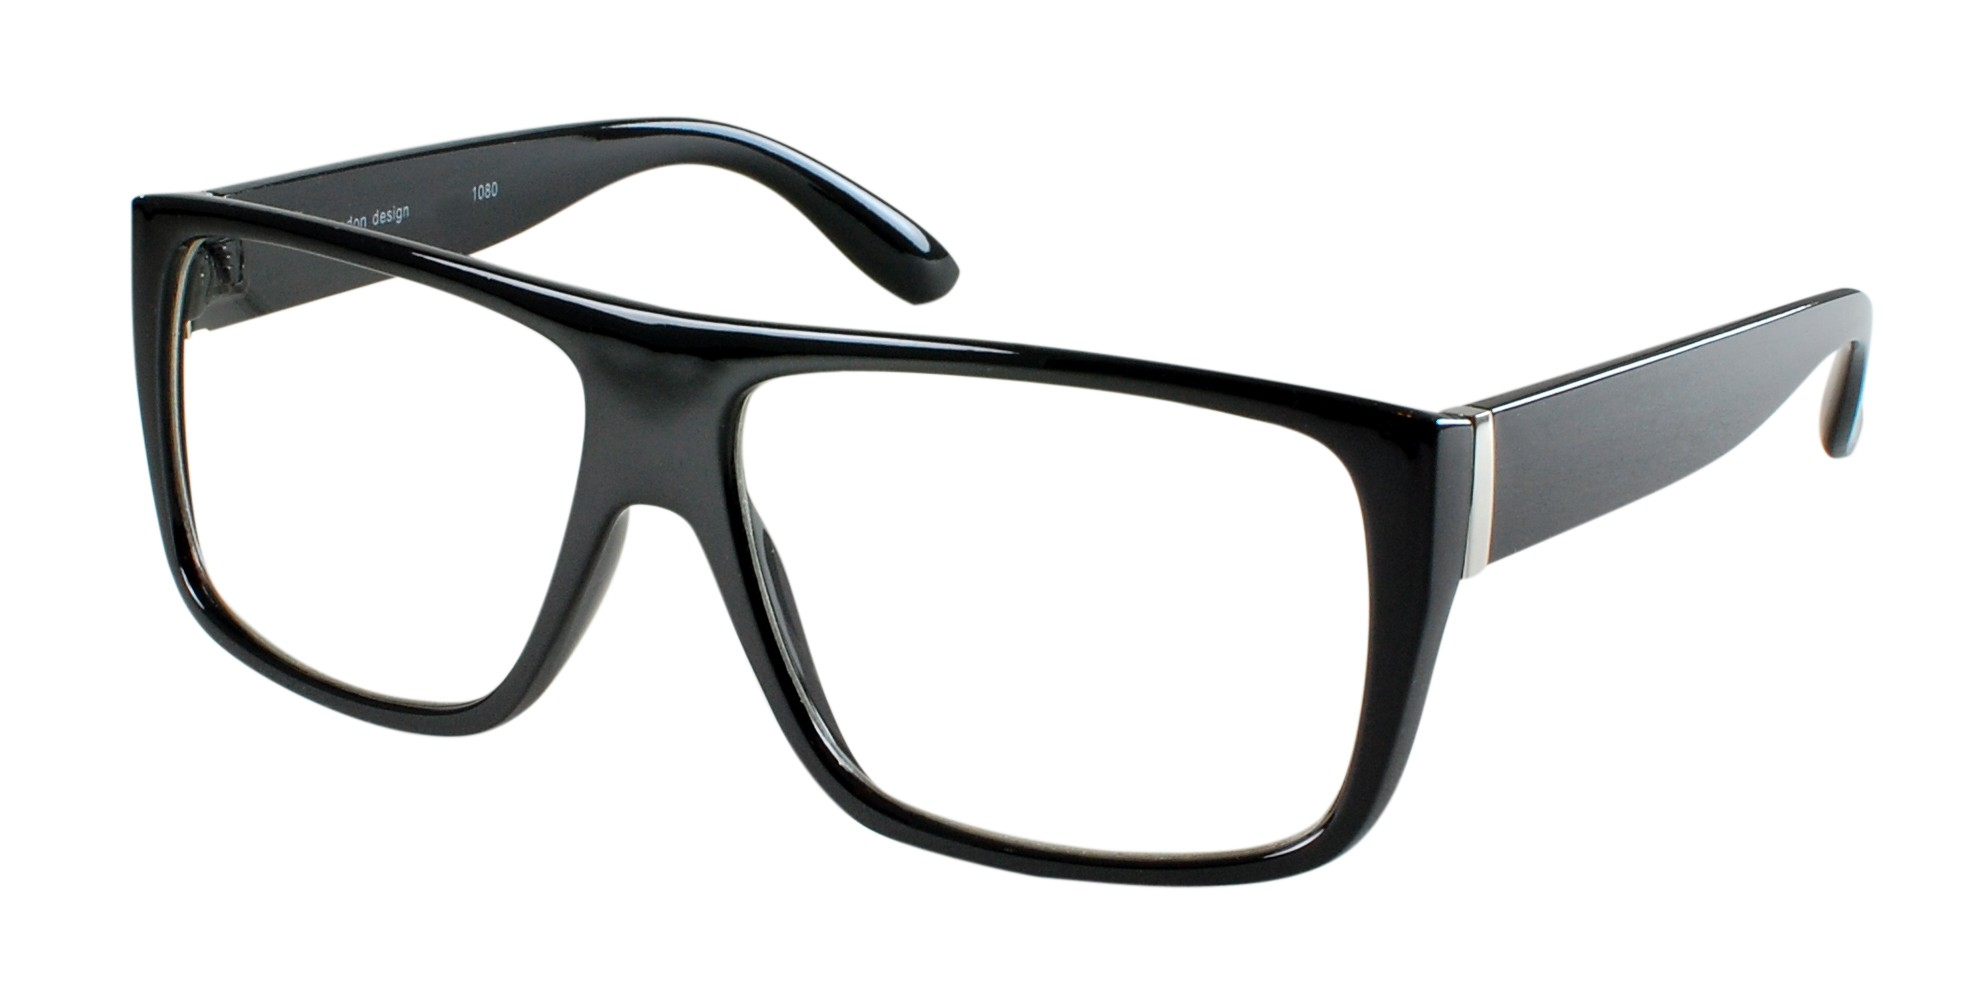 Drawn spectacles geek Clip Clipart 4 – Glasses